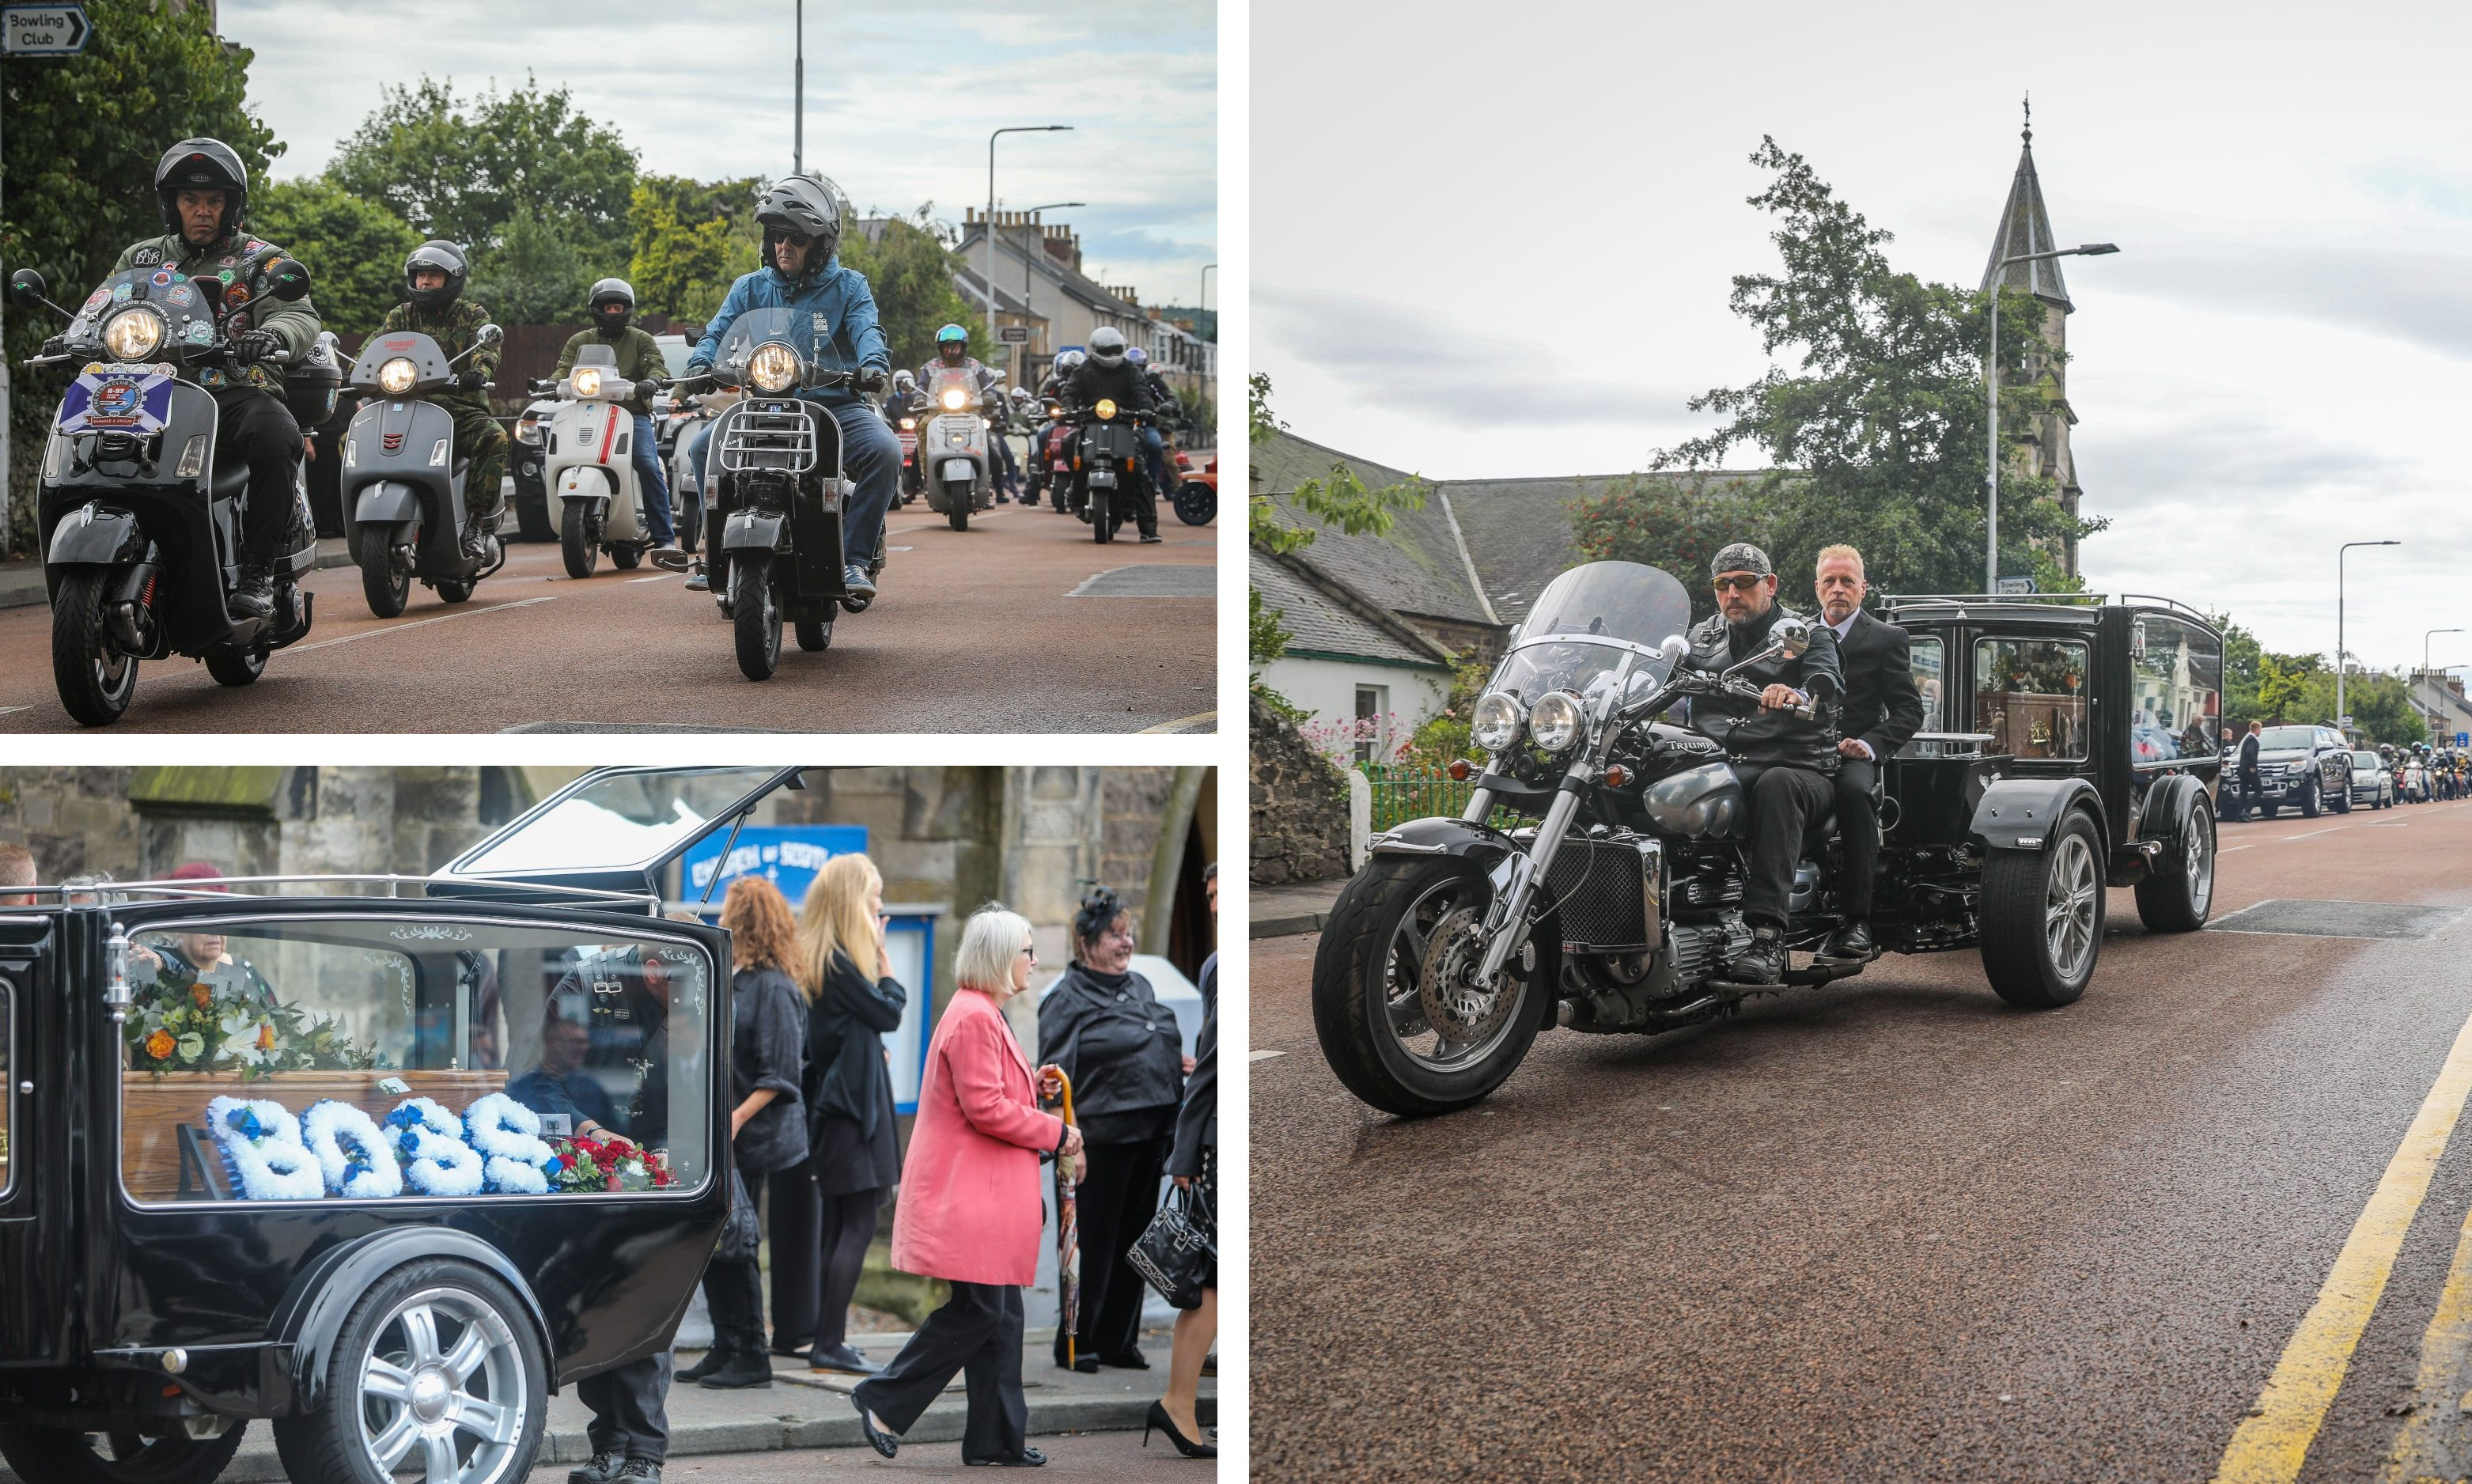 Andrew Hart's funeral service was attend by a large group of bikers.